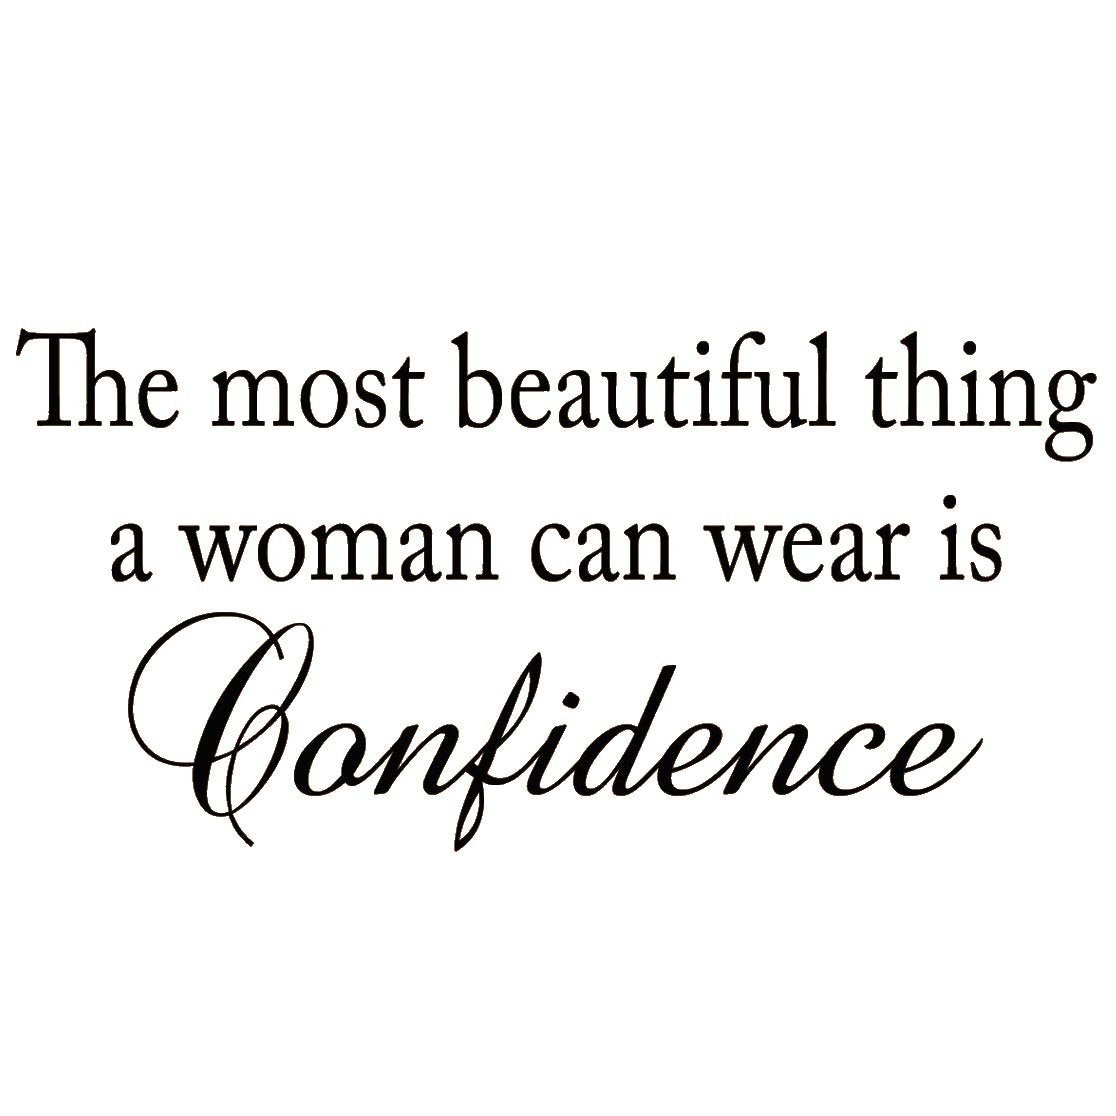 VWAQ The Most Beautiful Thing a Woman Can Wear is Confidence Vinyl Wall Decal - VWAQ Vinyl Wall Art Quotes and Prints